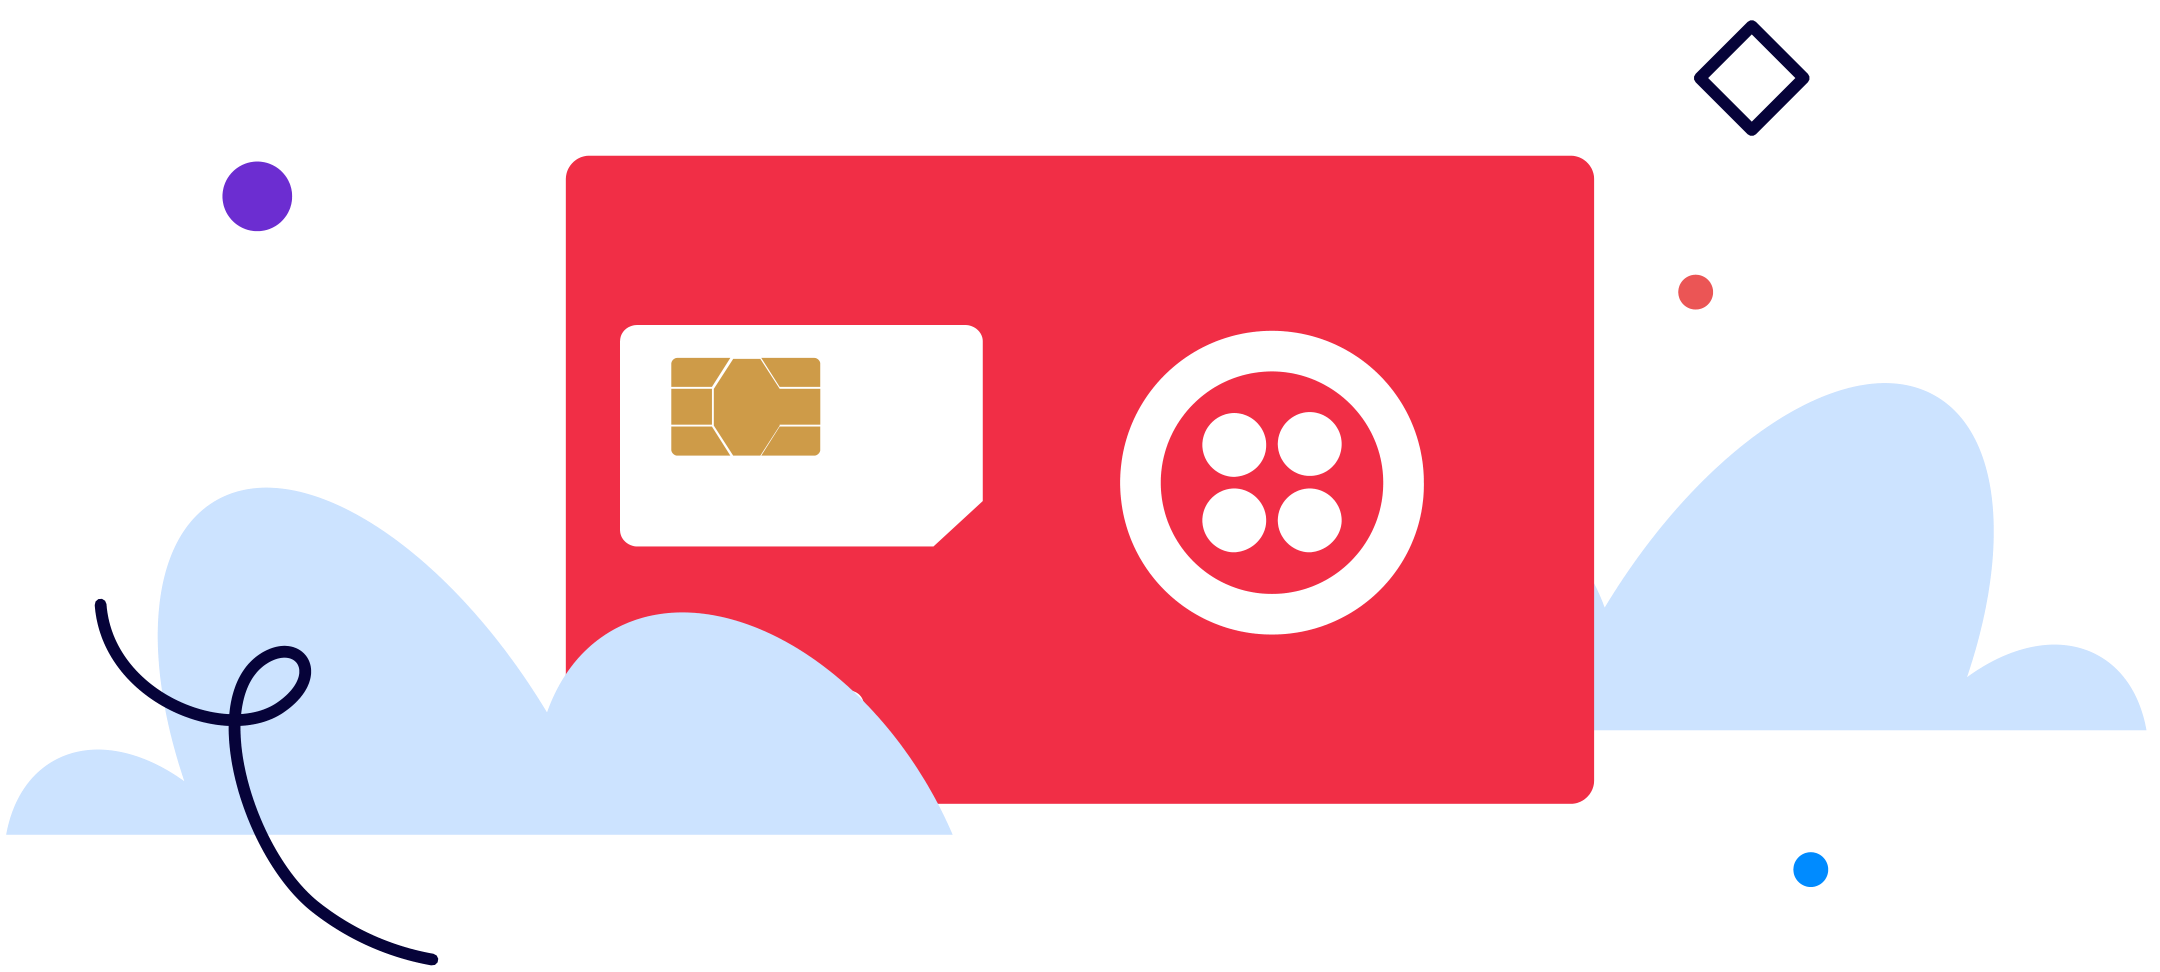 Red Twilio Super Sim Card with  cloud illustrations surrounding it